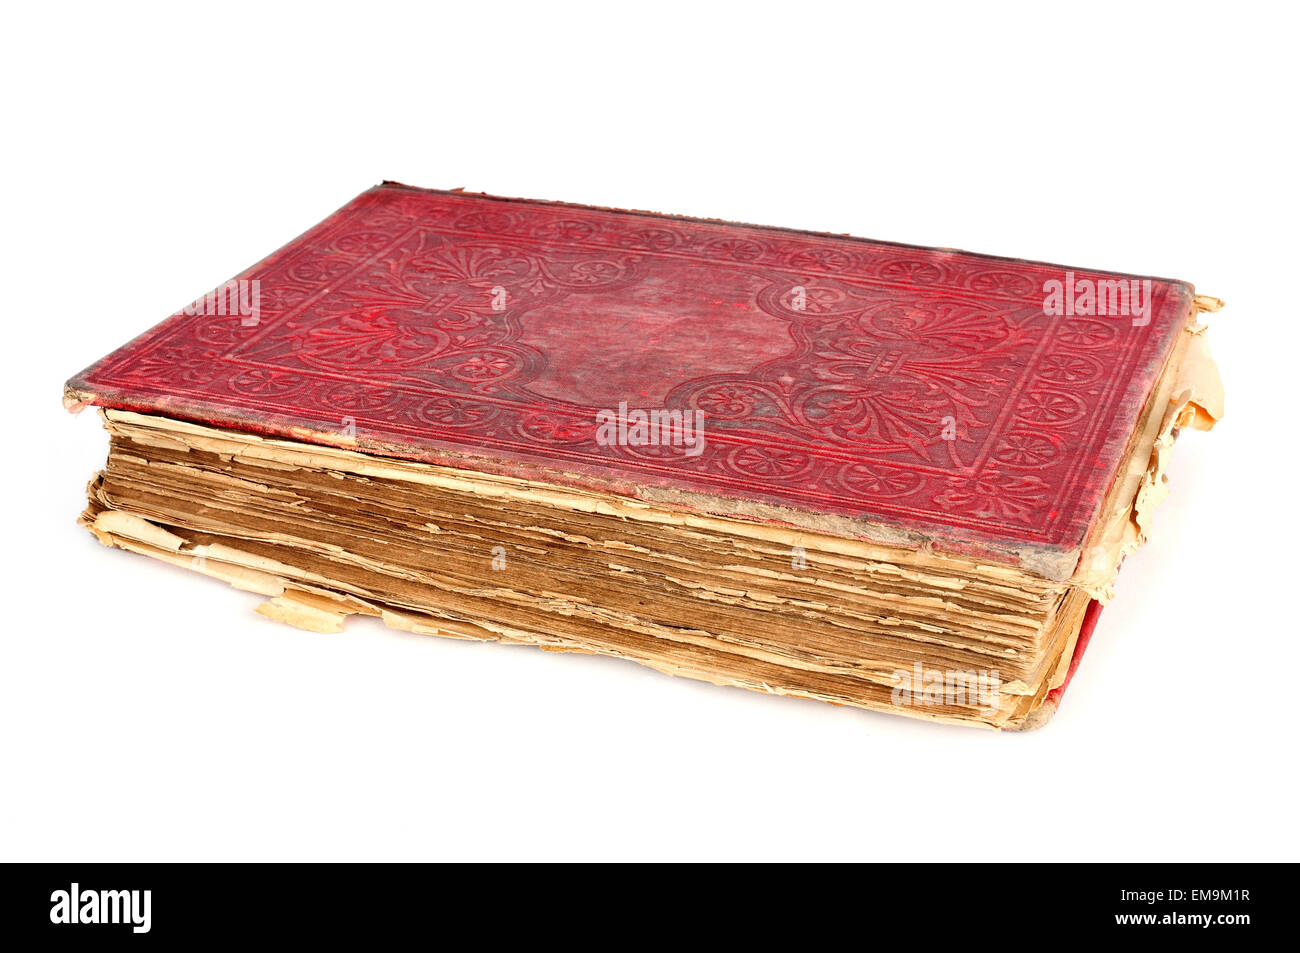 a worn-out old book with a red cover on a white background - Stock Image